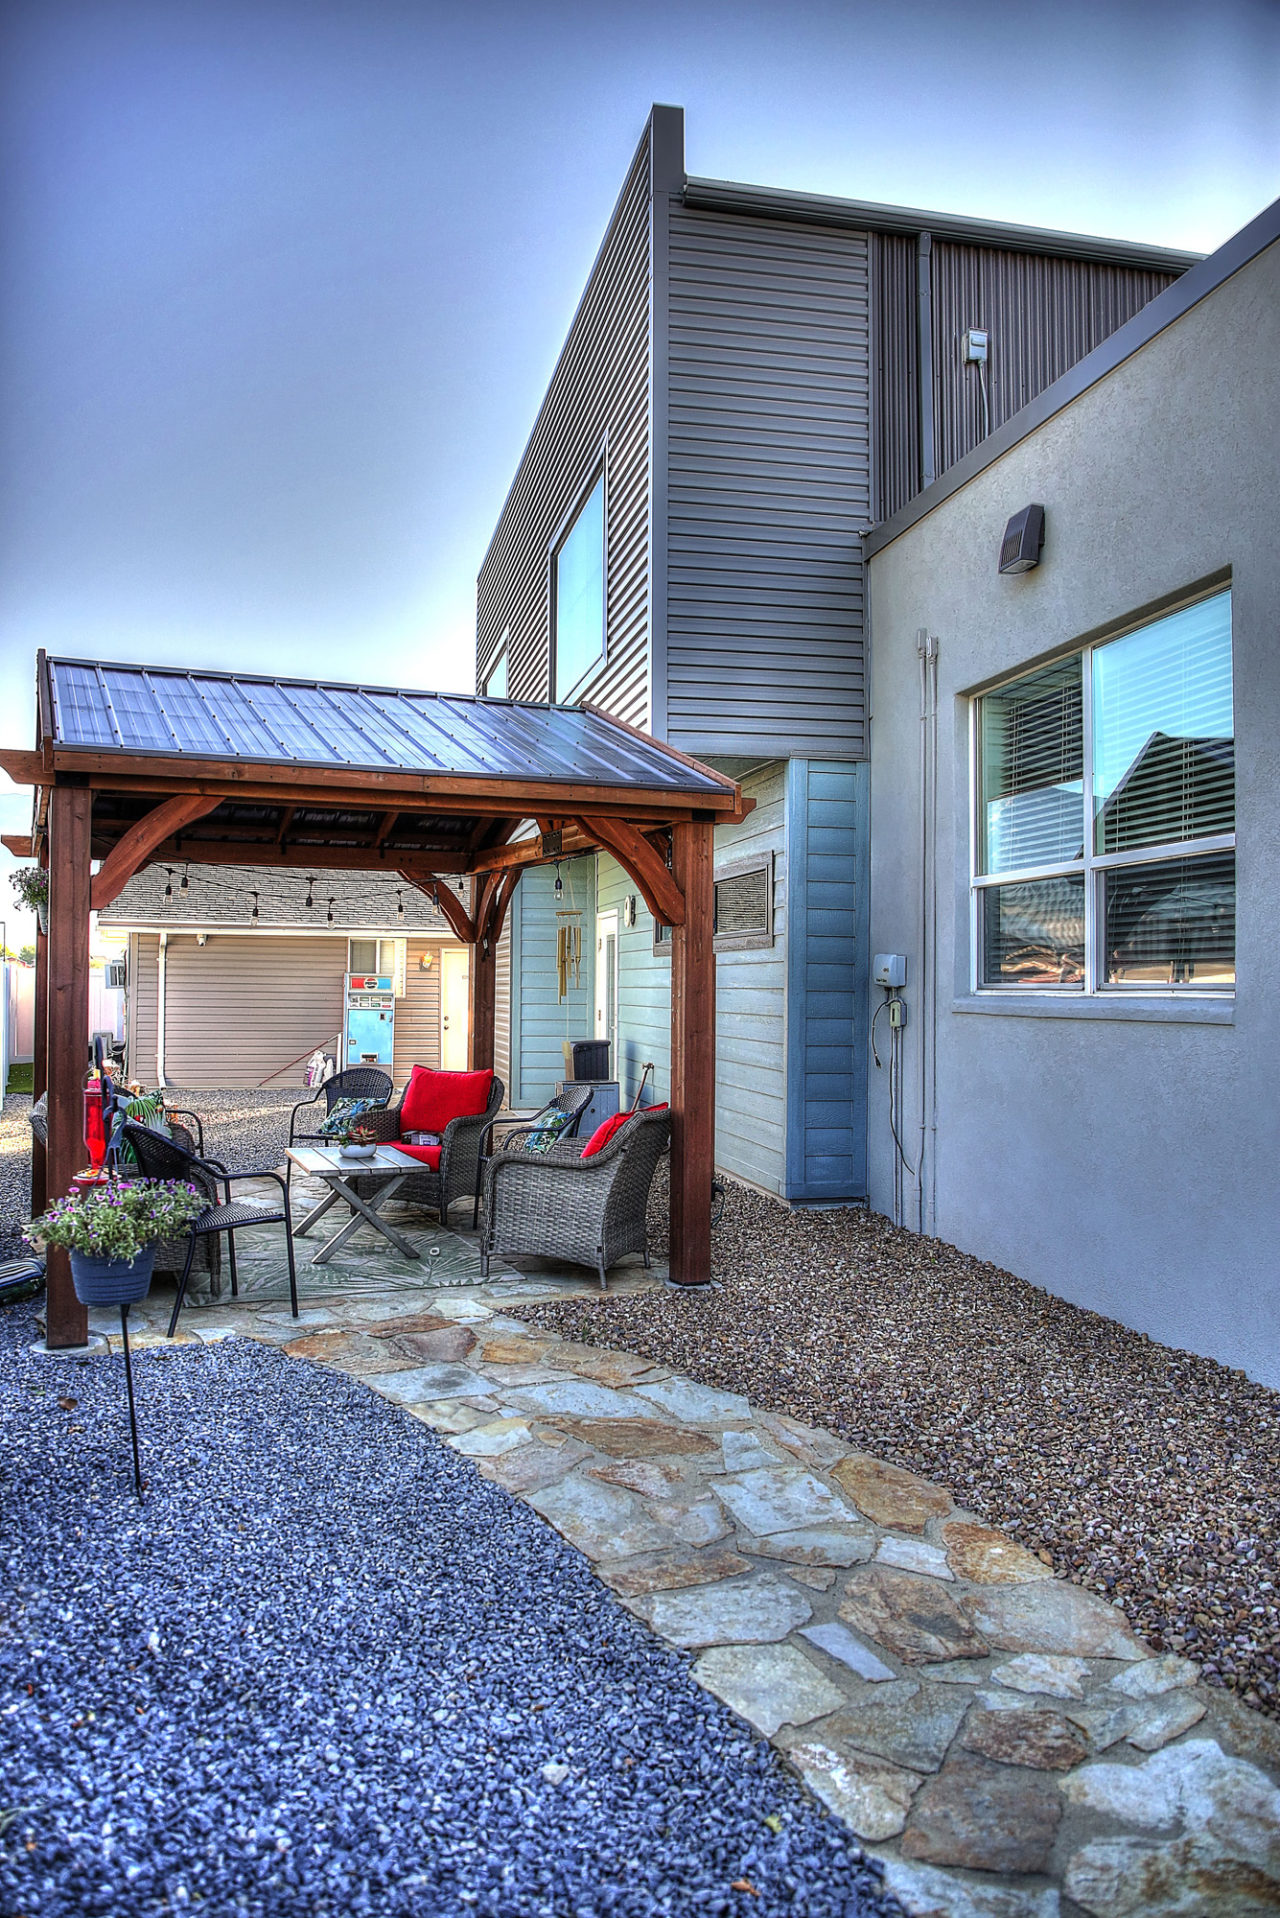 Aloha Behavioral Consultants, metal exterior siding, stucco exterior, pergola with metal roof